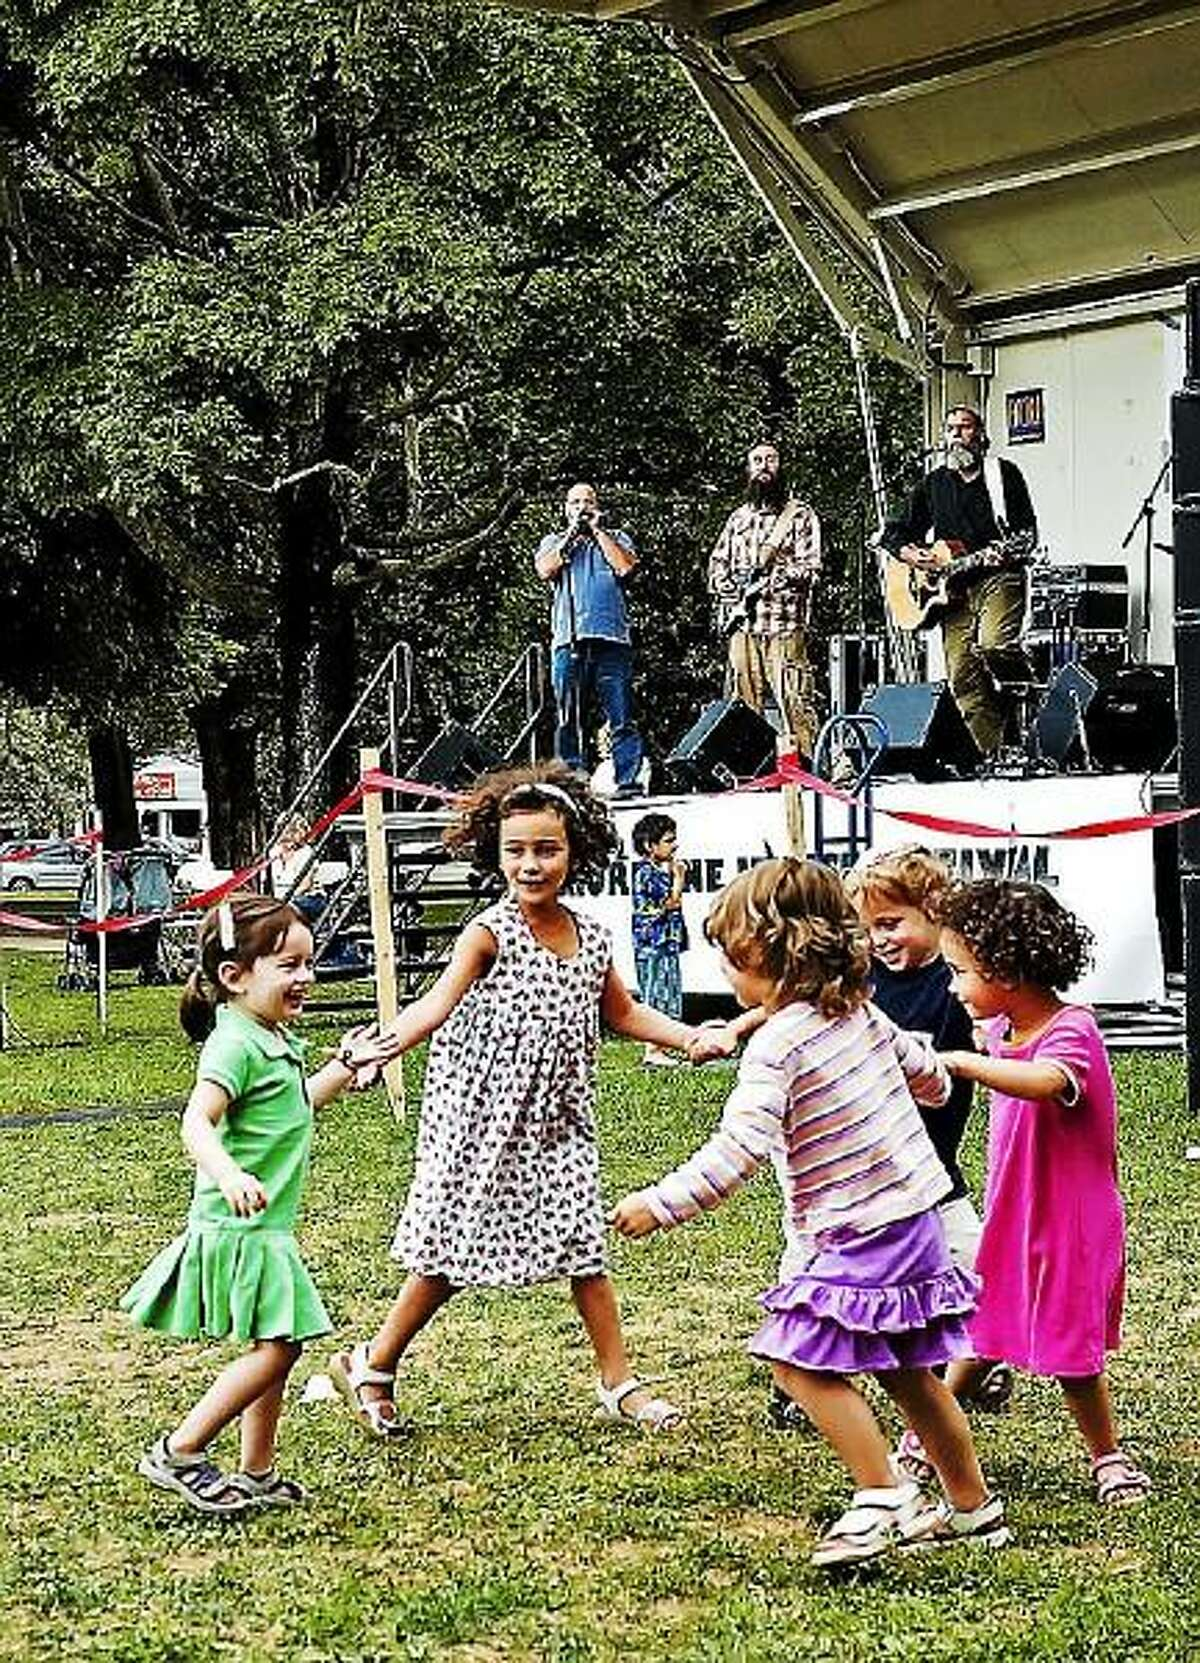 Chabad of the Shoreline photo: The Shoreline Jewish Festival will have lots of music and plenty of children's activities Sunday on the Guilford Green.